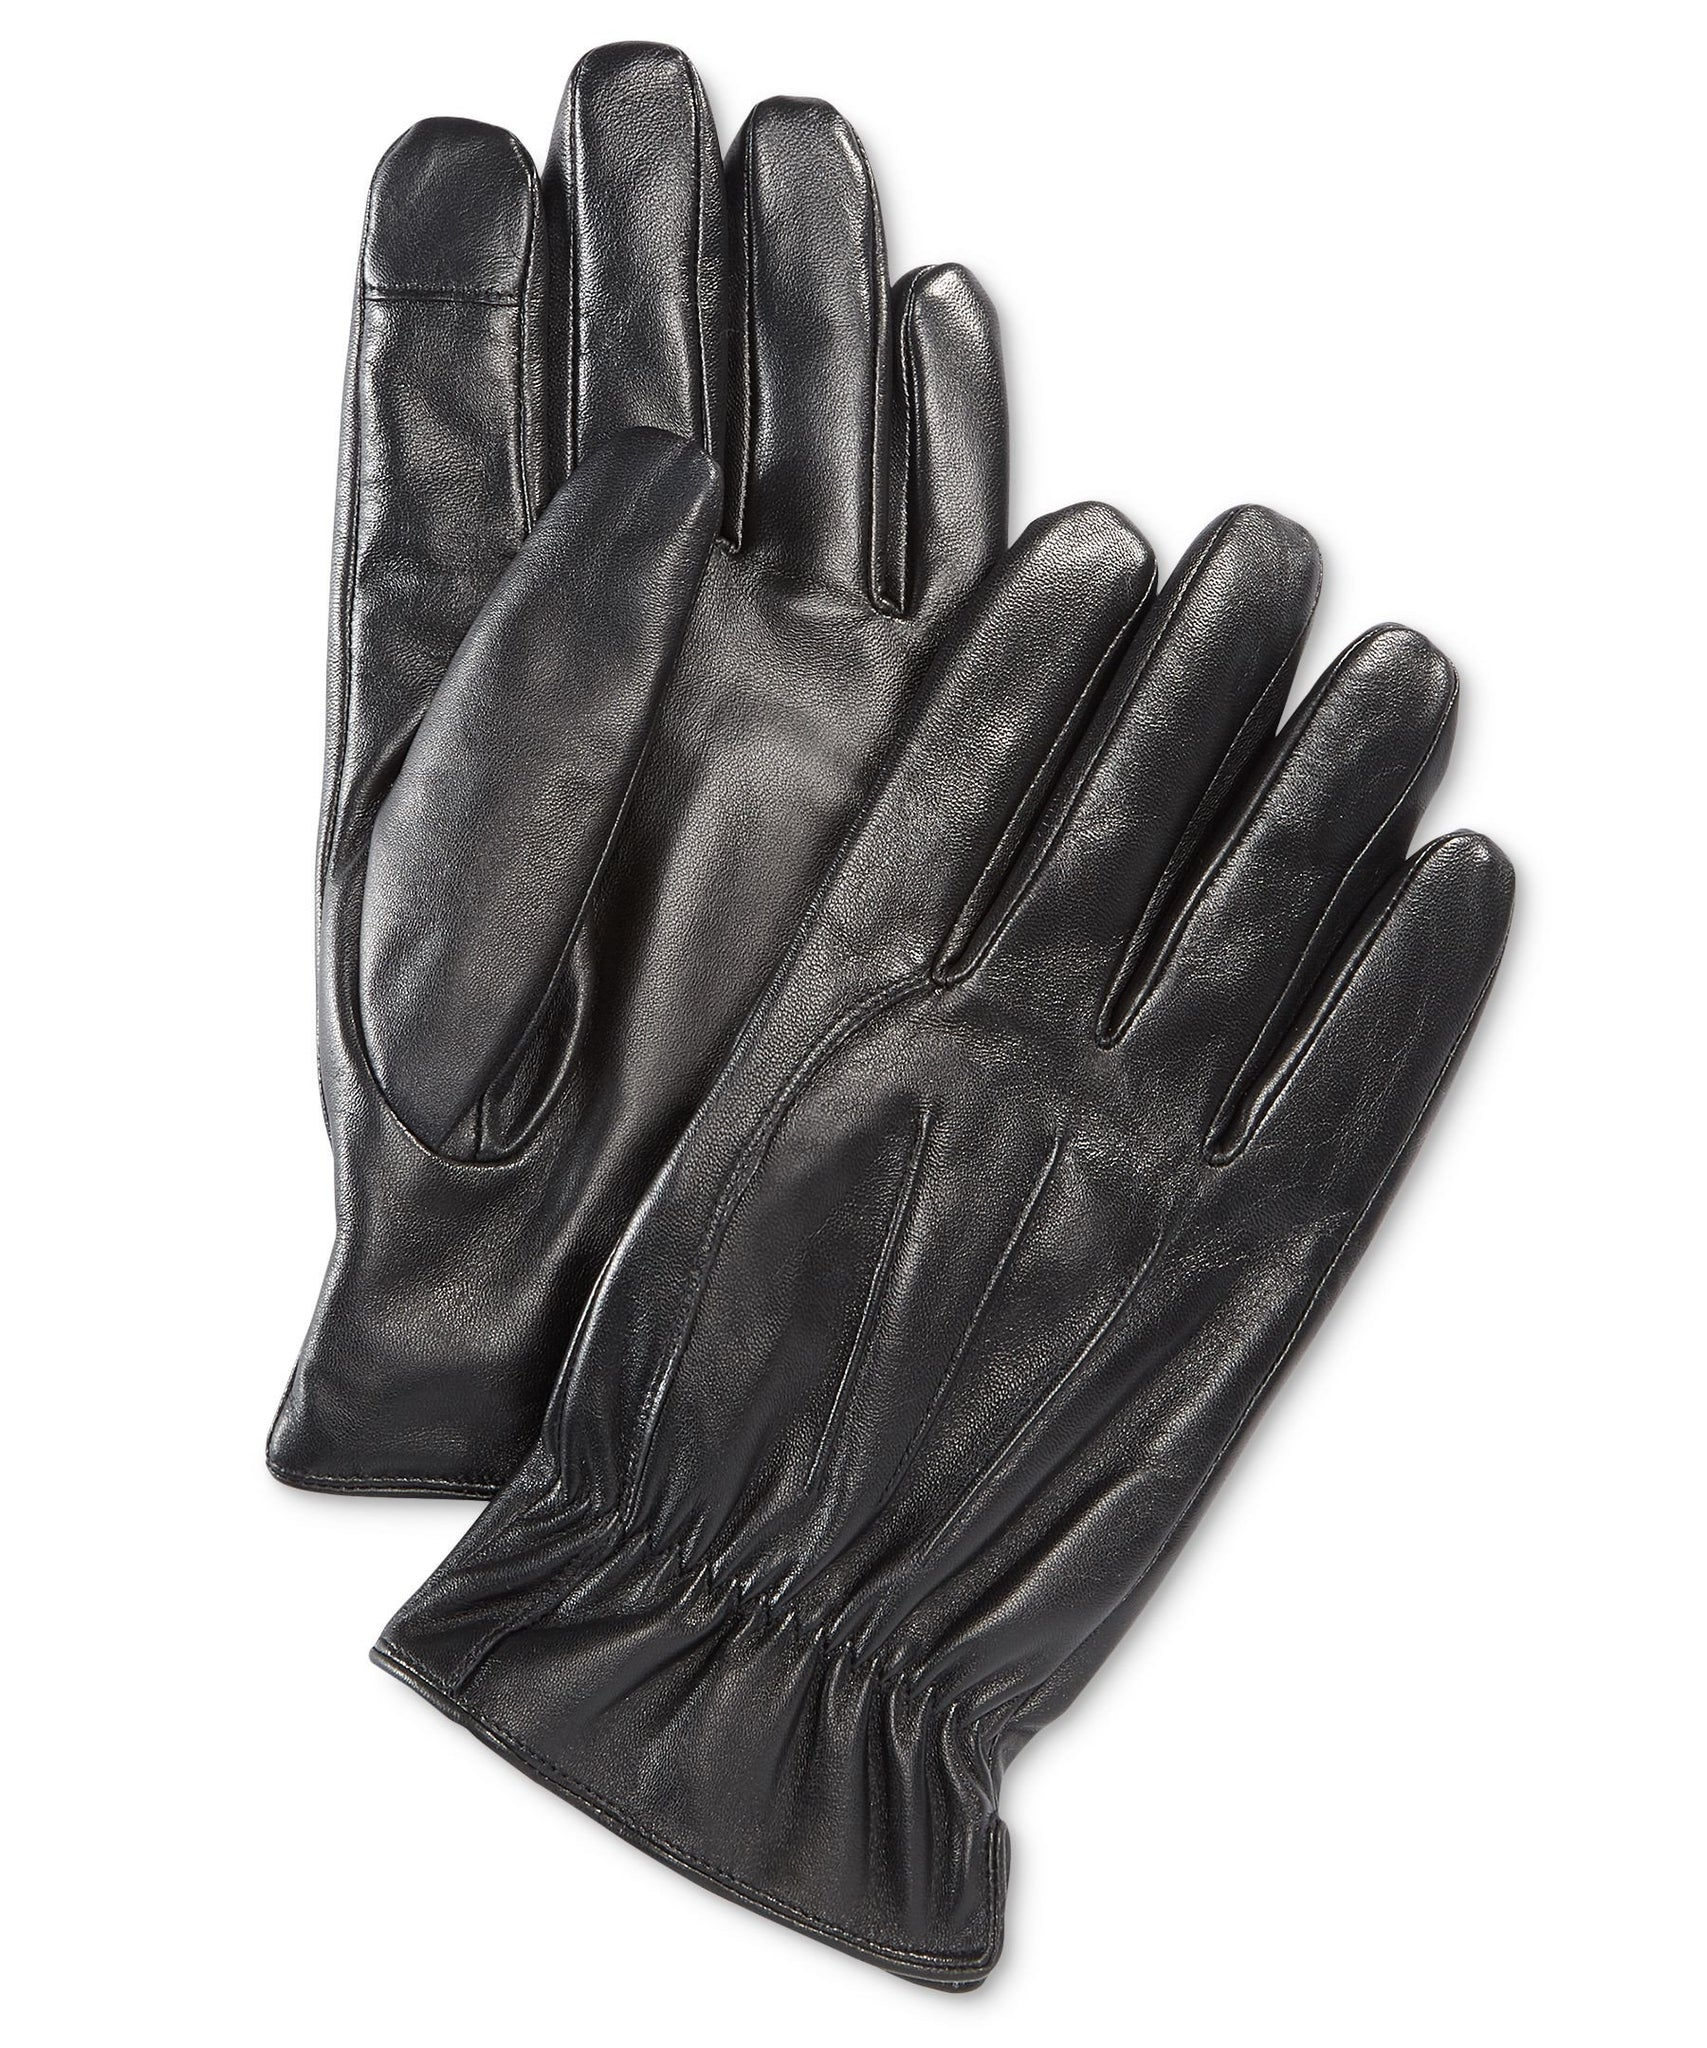 Ryan Seacrest Distinction Leather Intelitouch Gloves 001 XL